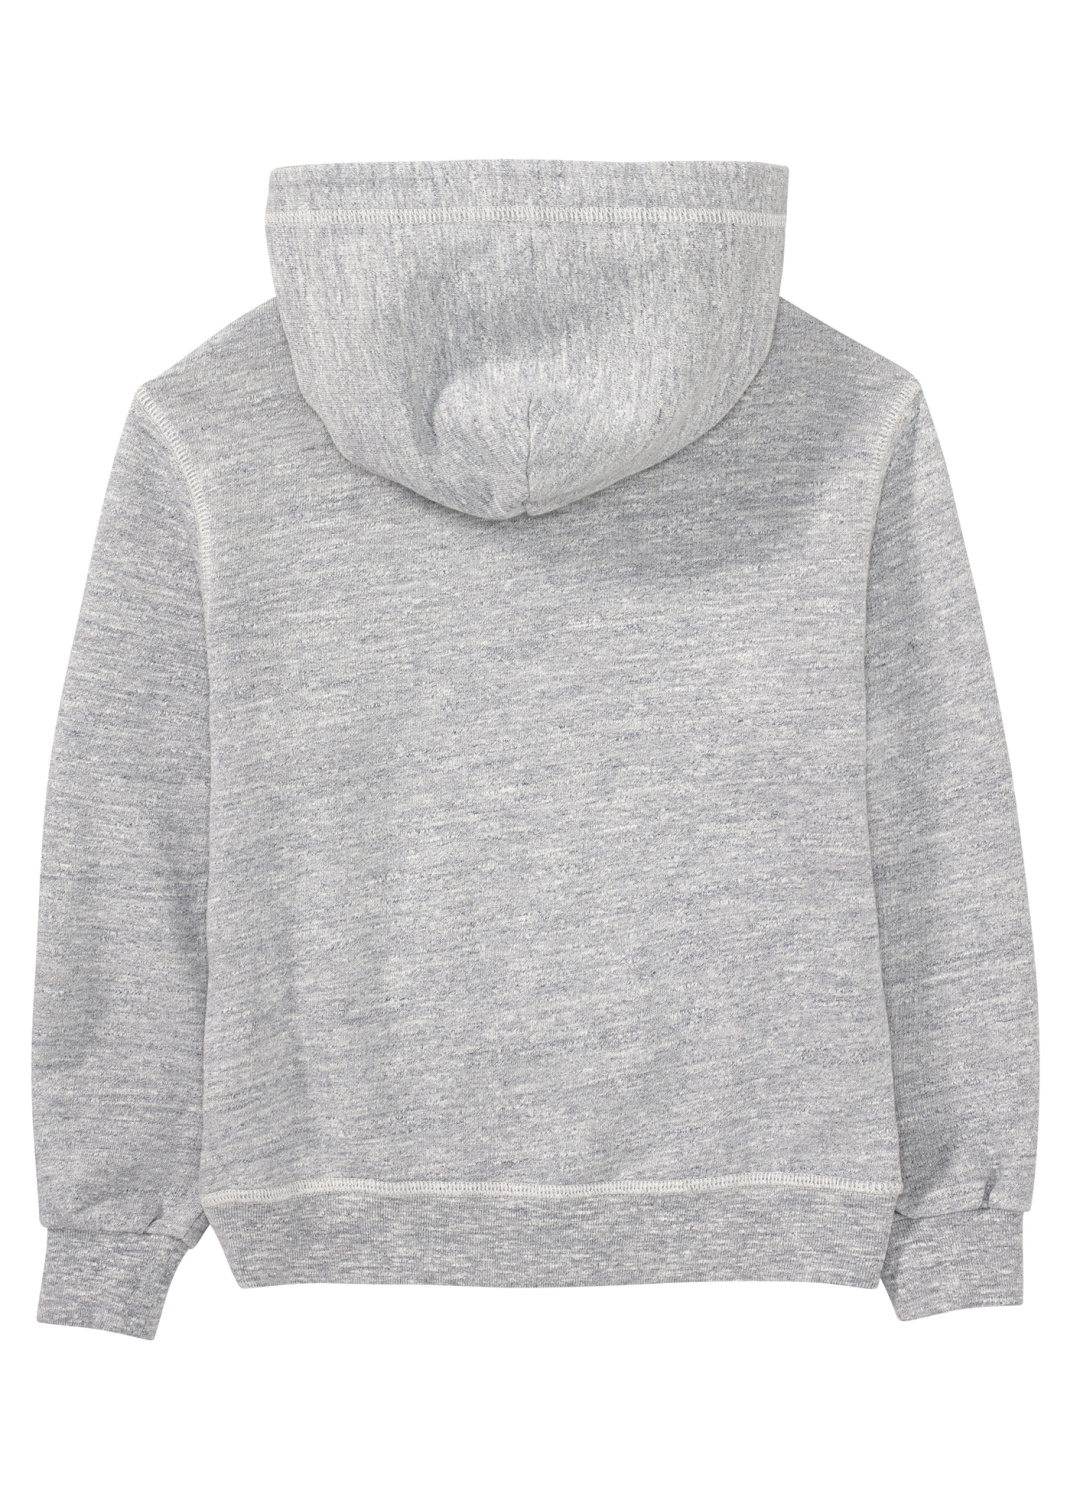 RELAX-ICON Hoodie image number 1